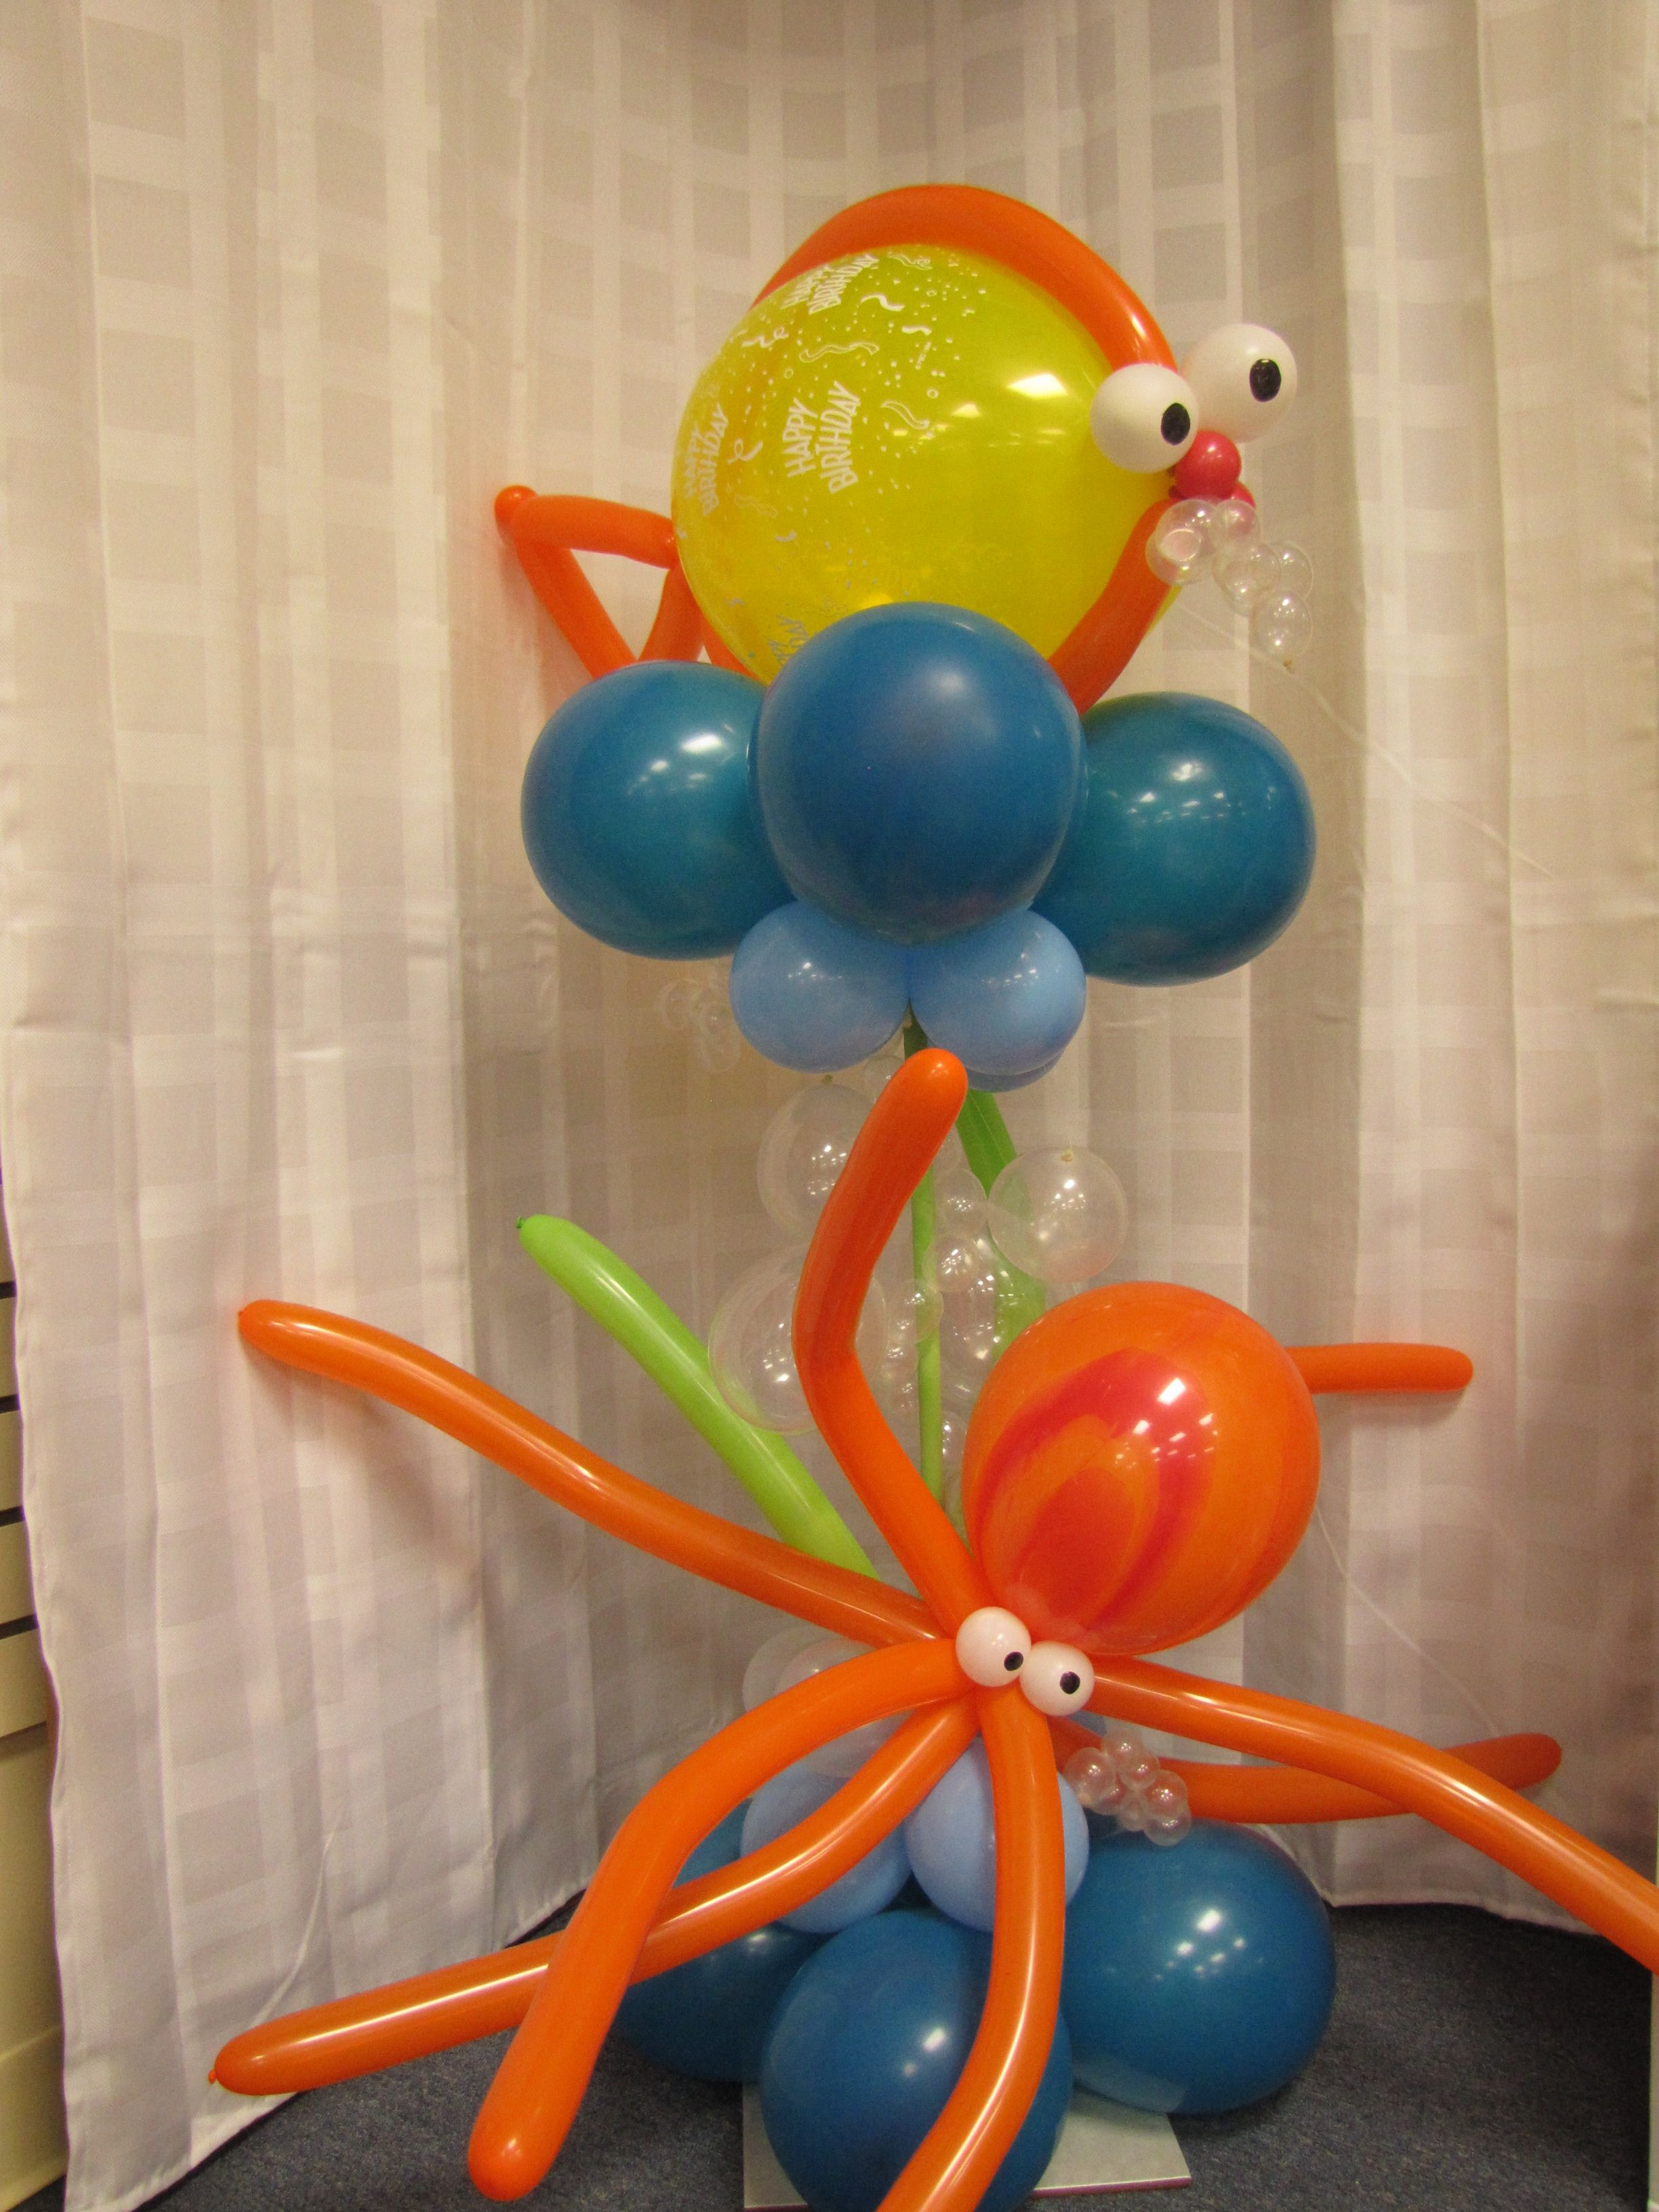 Baby Shower Decorations For Boy Balloon Sculpture